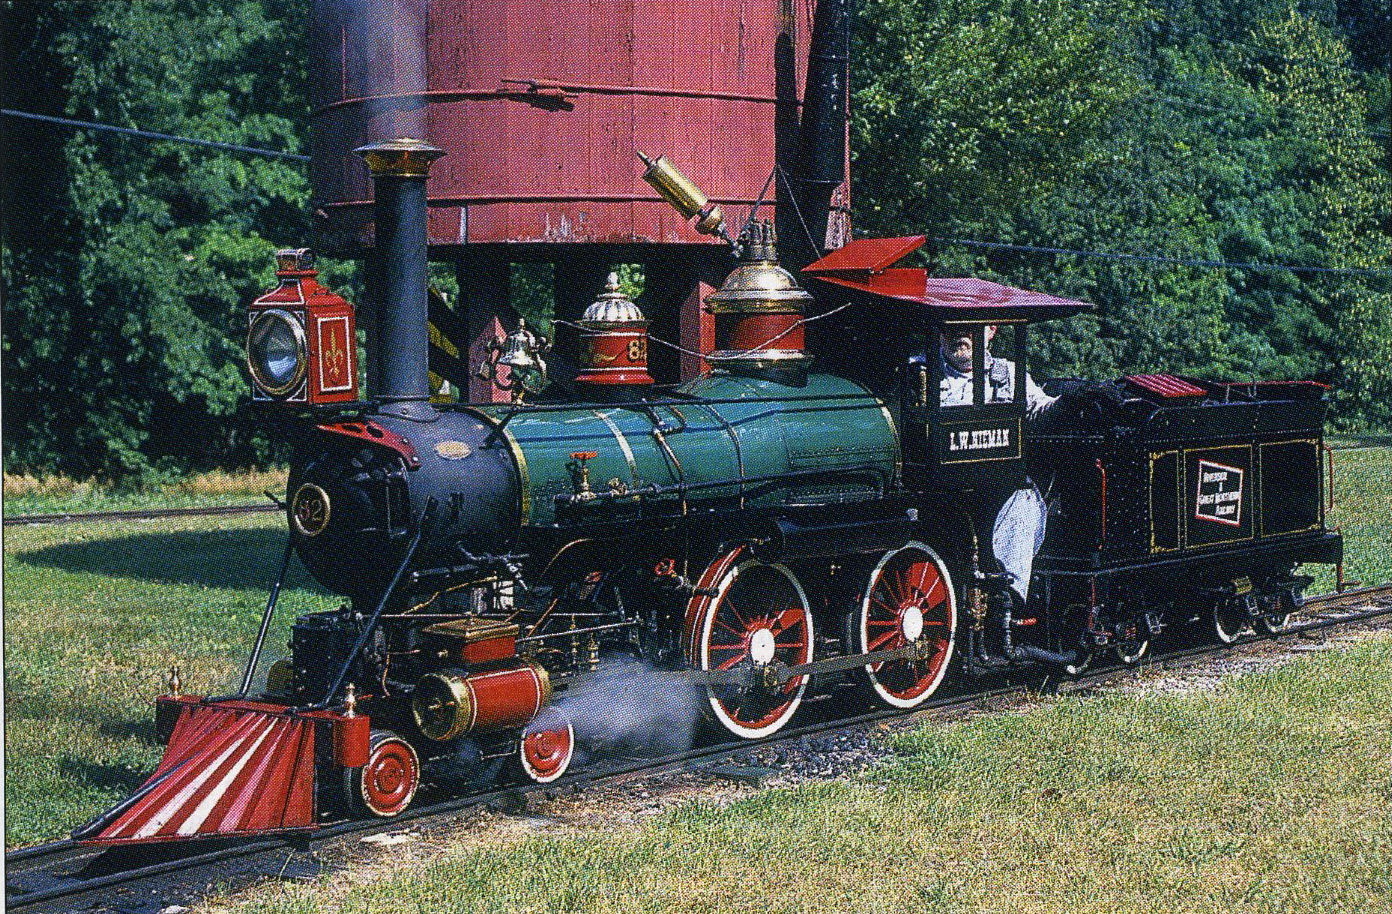 Scale Steam Locomotives For Sale N Scale Steam Locomotives - Riverside great northern no 82 the i w nieman poses at the water tank at the wisconsin dells wisconsin yard the 15 gauge 4 4 0 was built by norman